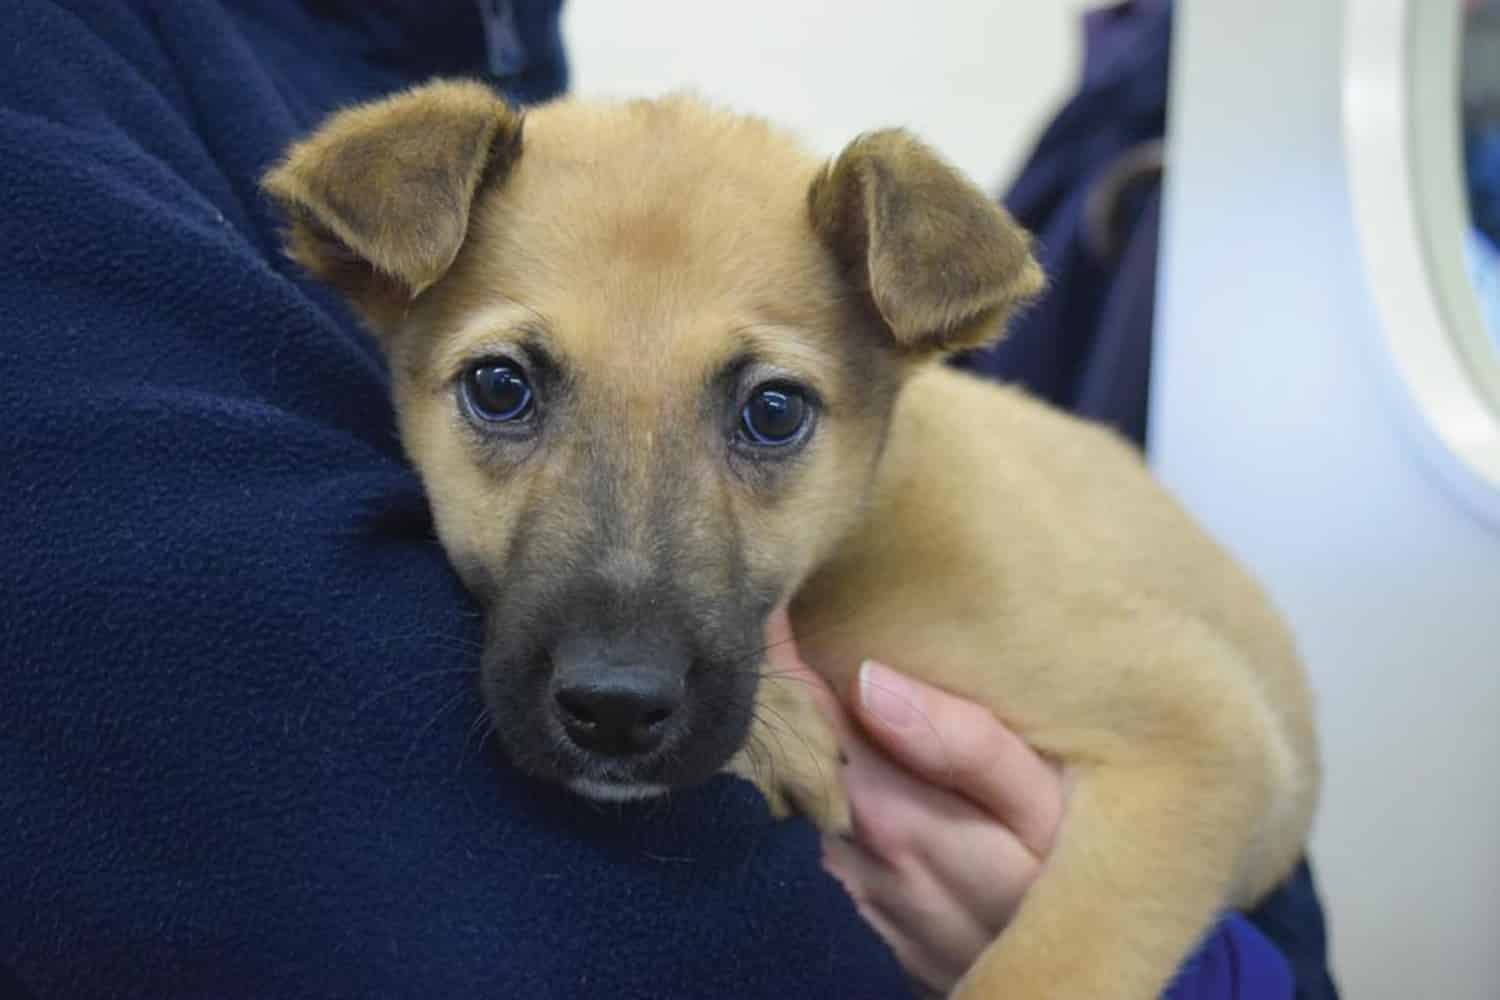 RESCUE CENTRE'S PLEA Battersea Dogs and Cats Home flooded with unwanted pets bought as Christmas presents from social media